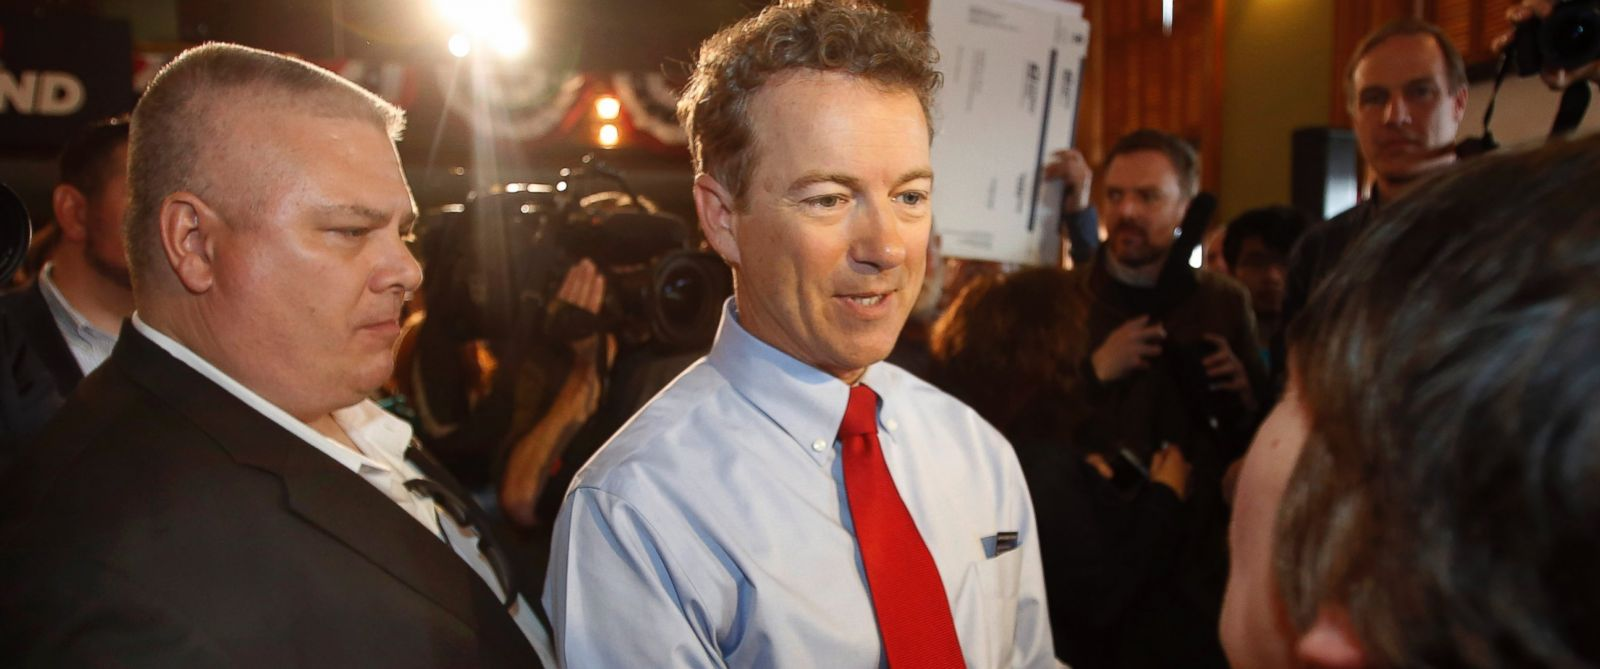 PHOTO: Republican Presidential candidate, Sen. Rand Paul, R-Ky., greets supporters, April 8, 2015, in Milford, N.H.